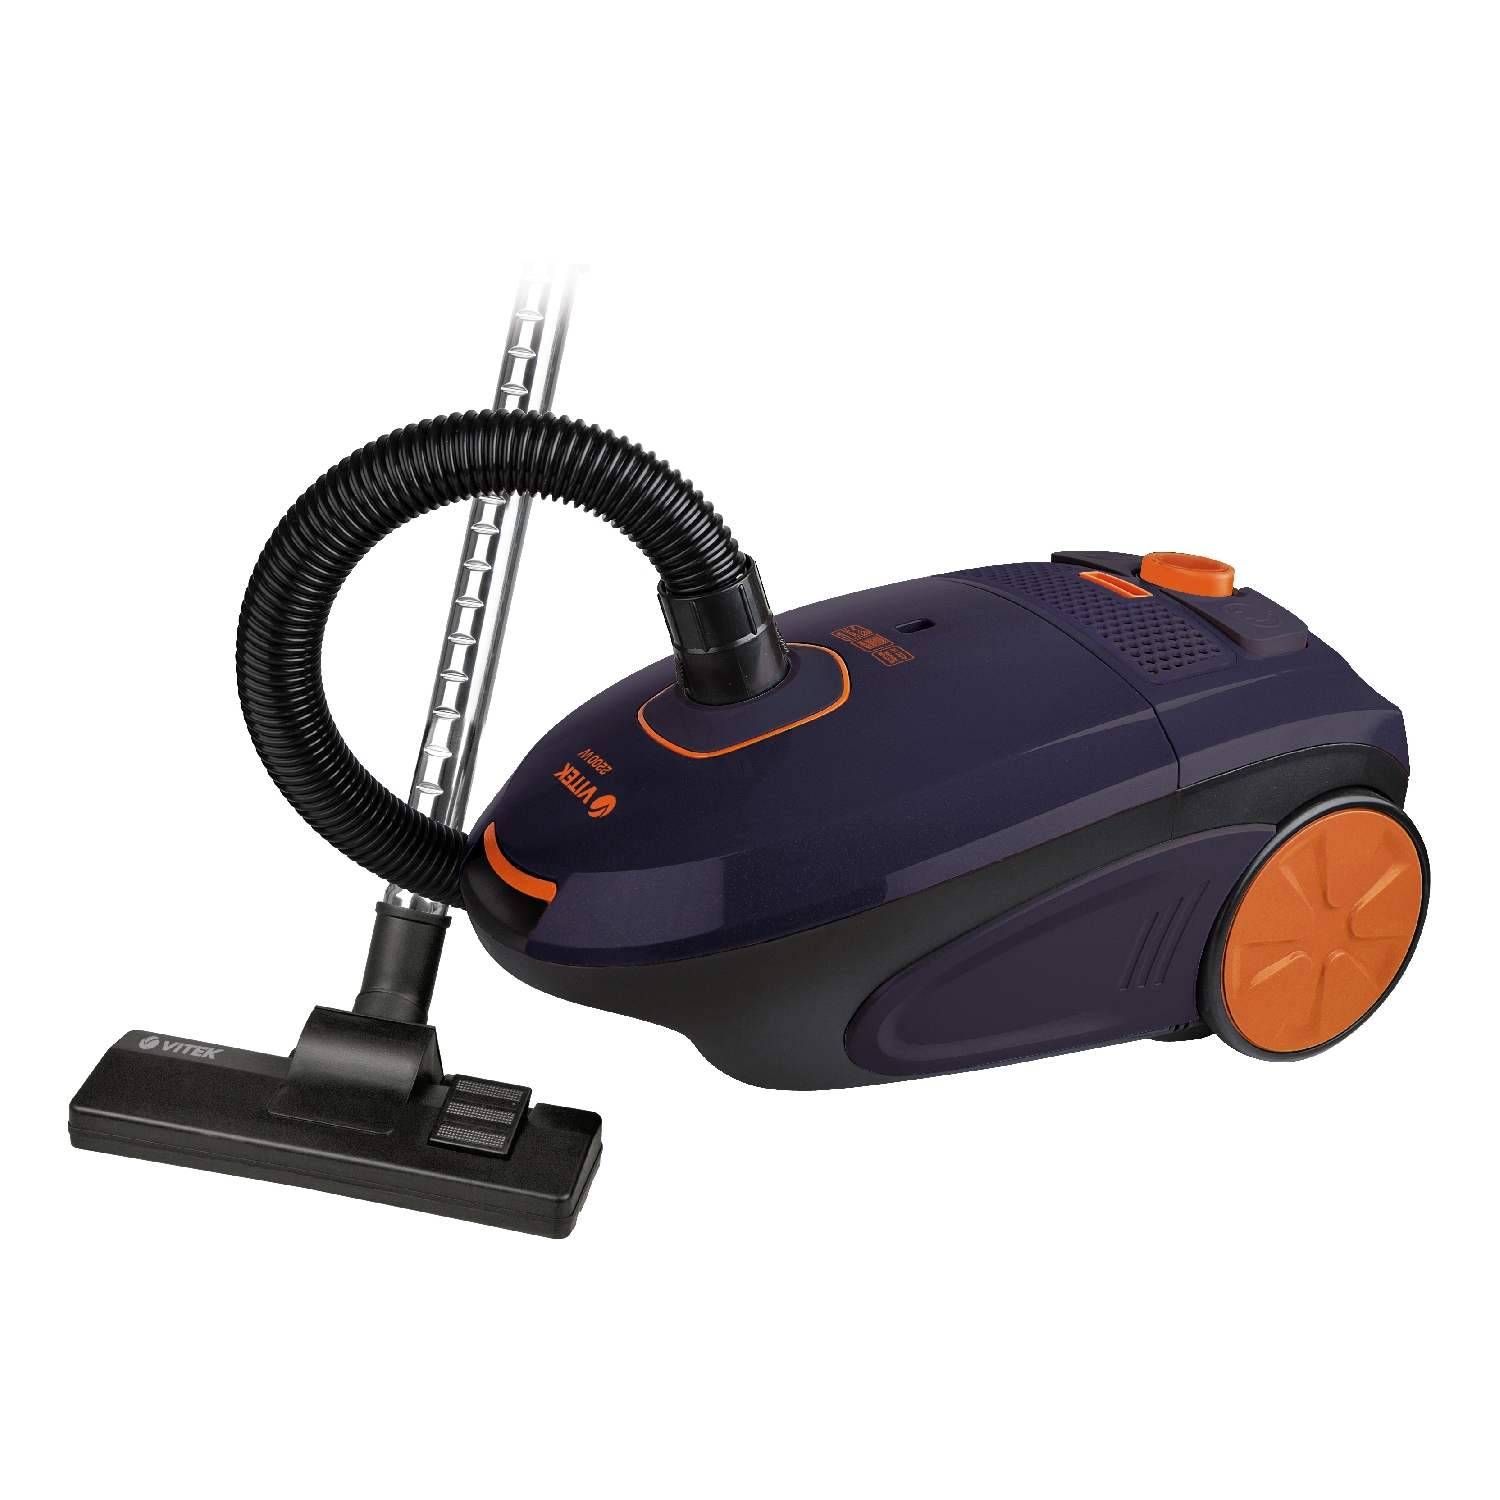 Electric vacuum cleaner Vitek VT-8106 VT vacuum cleaner vitek vt 8130 bk